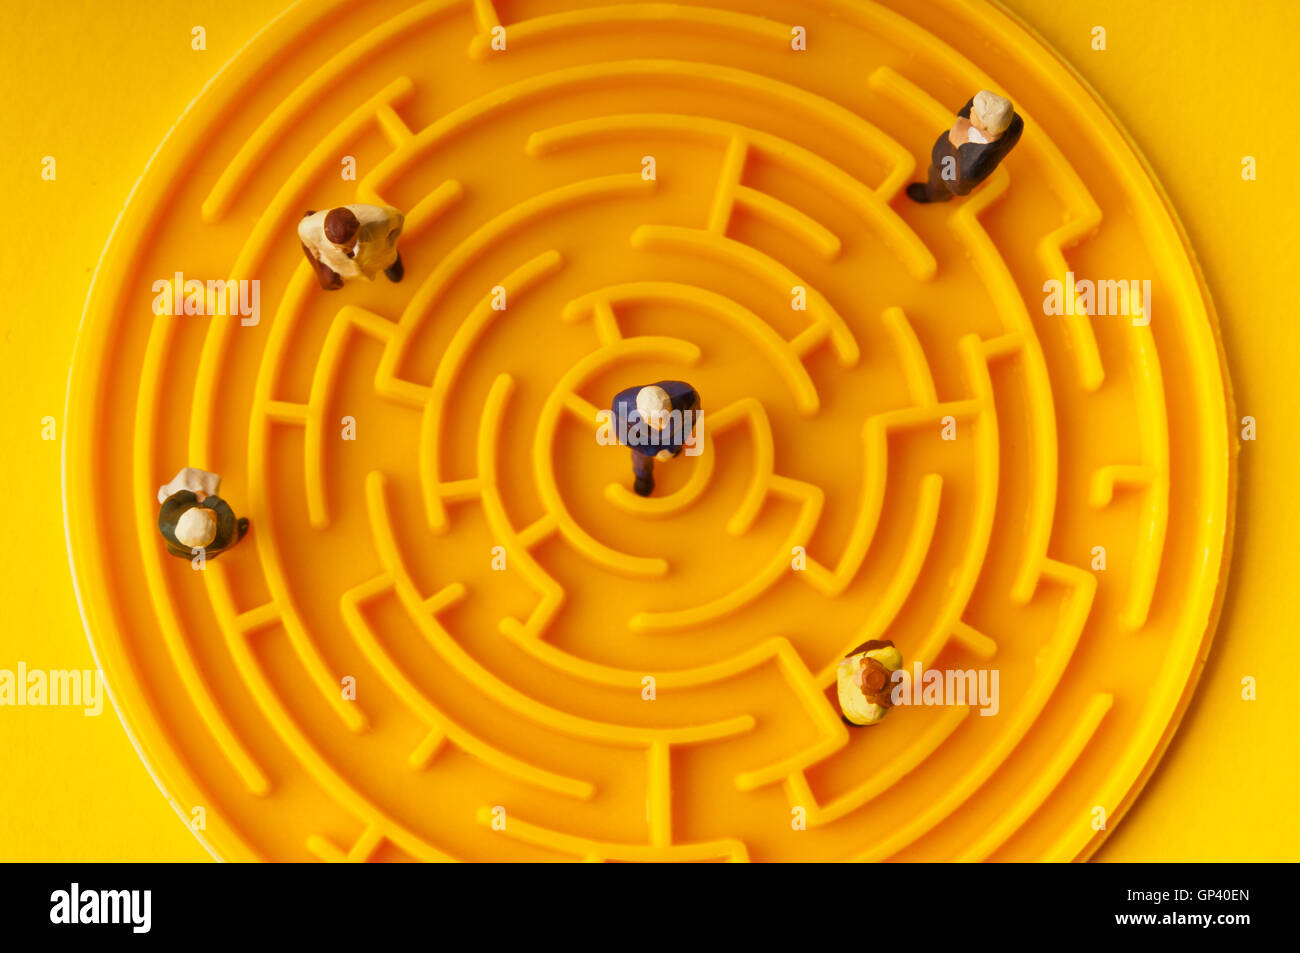 miniature figurines of people in a maze - Stock Image